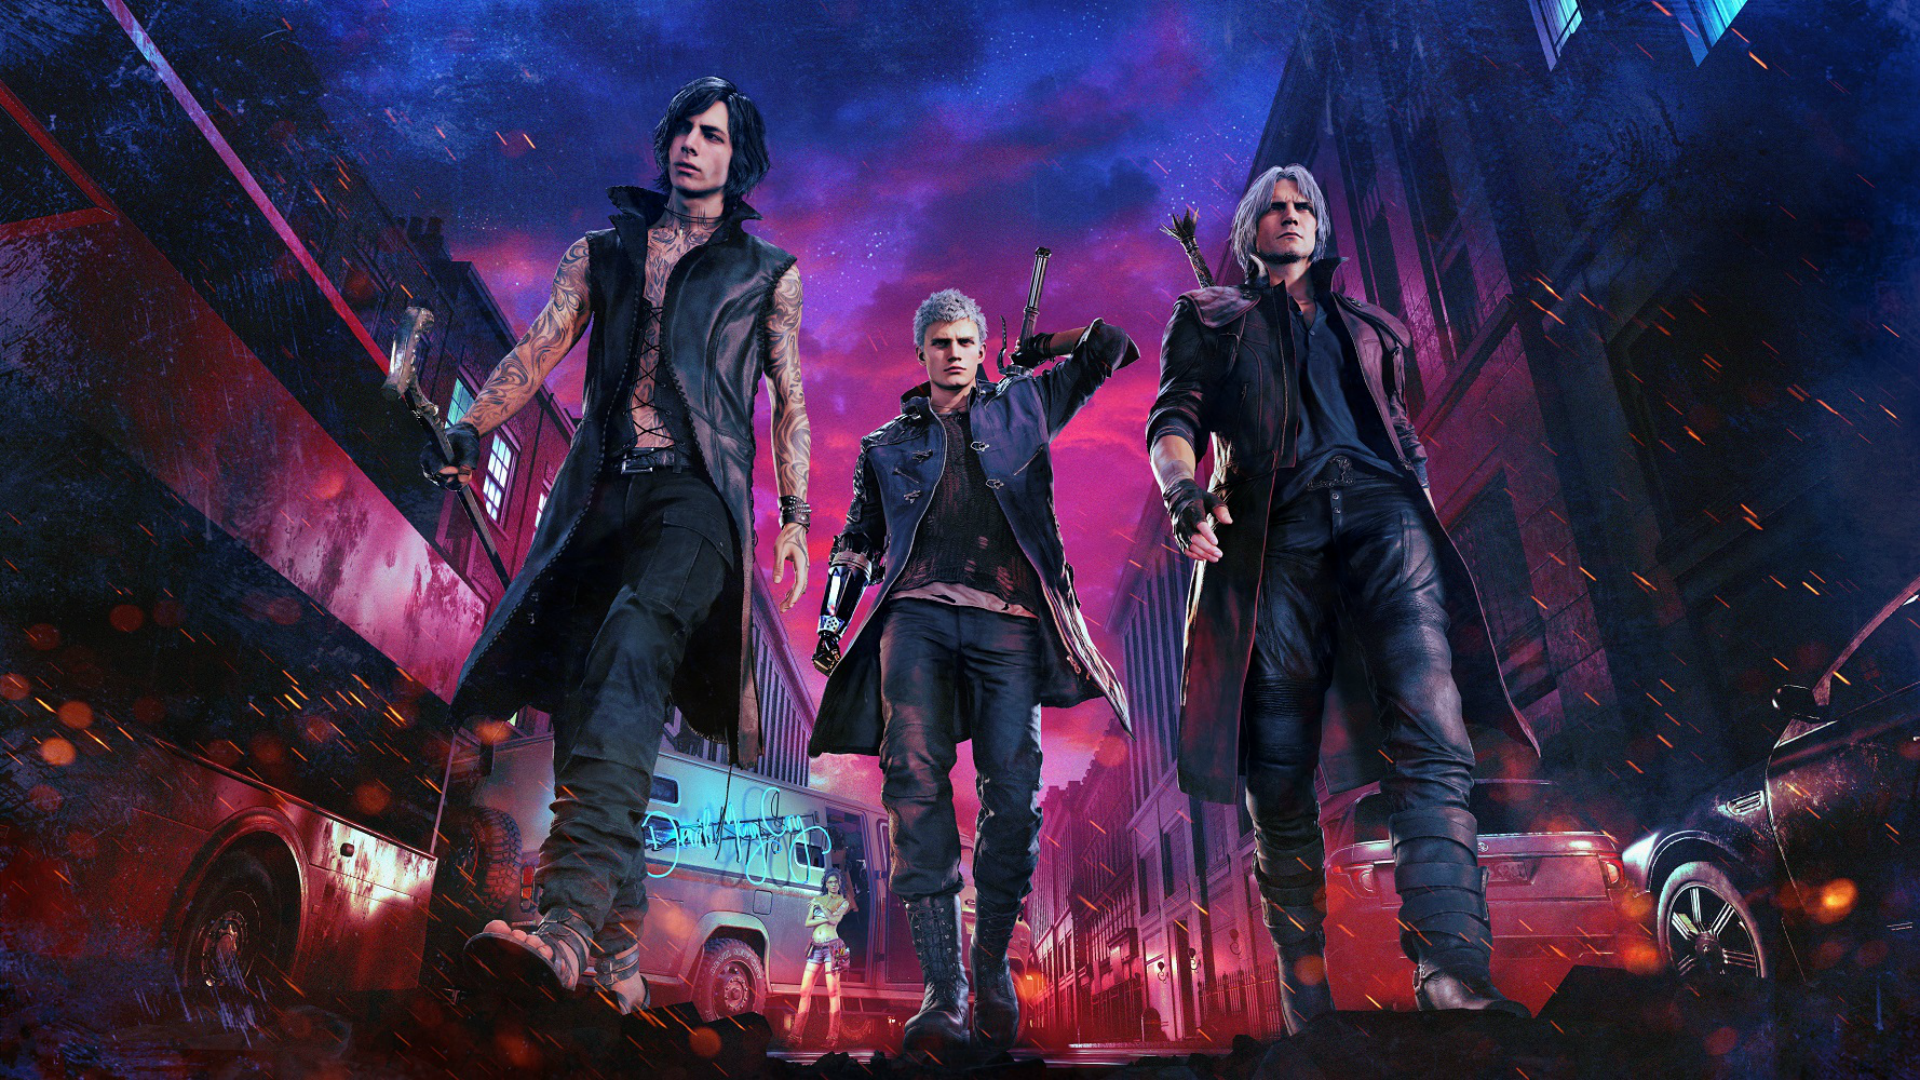 Devil May Cry 5 Deluxe Edition Key Art Fondo De Pantalla